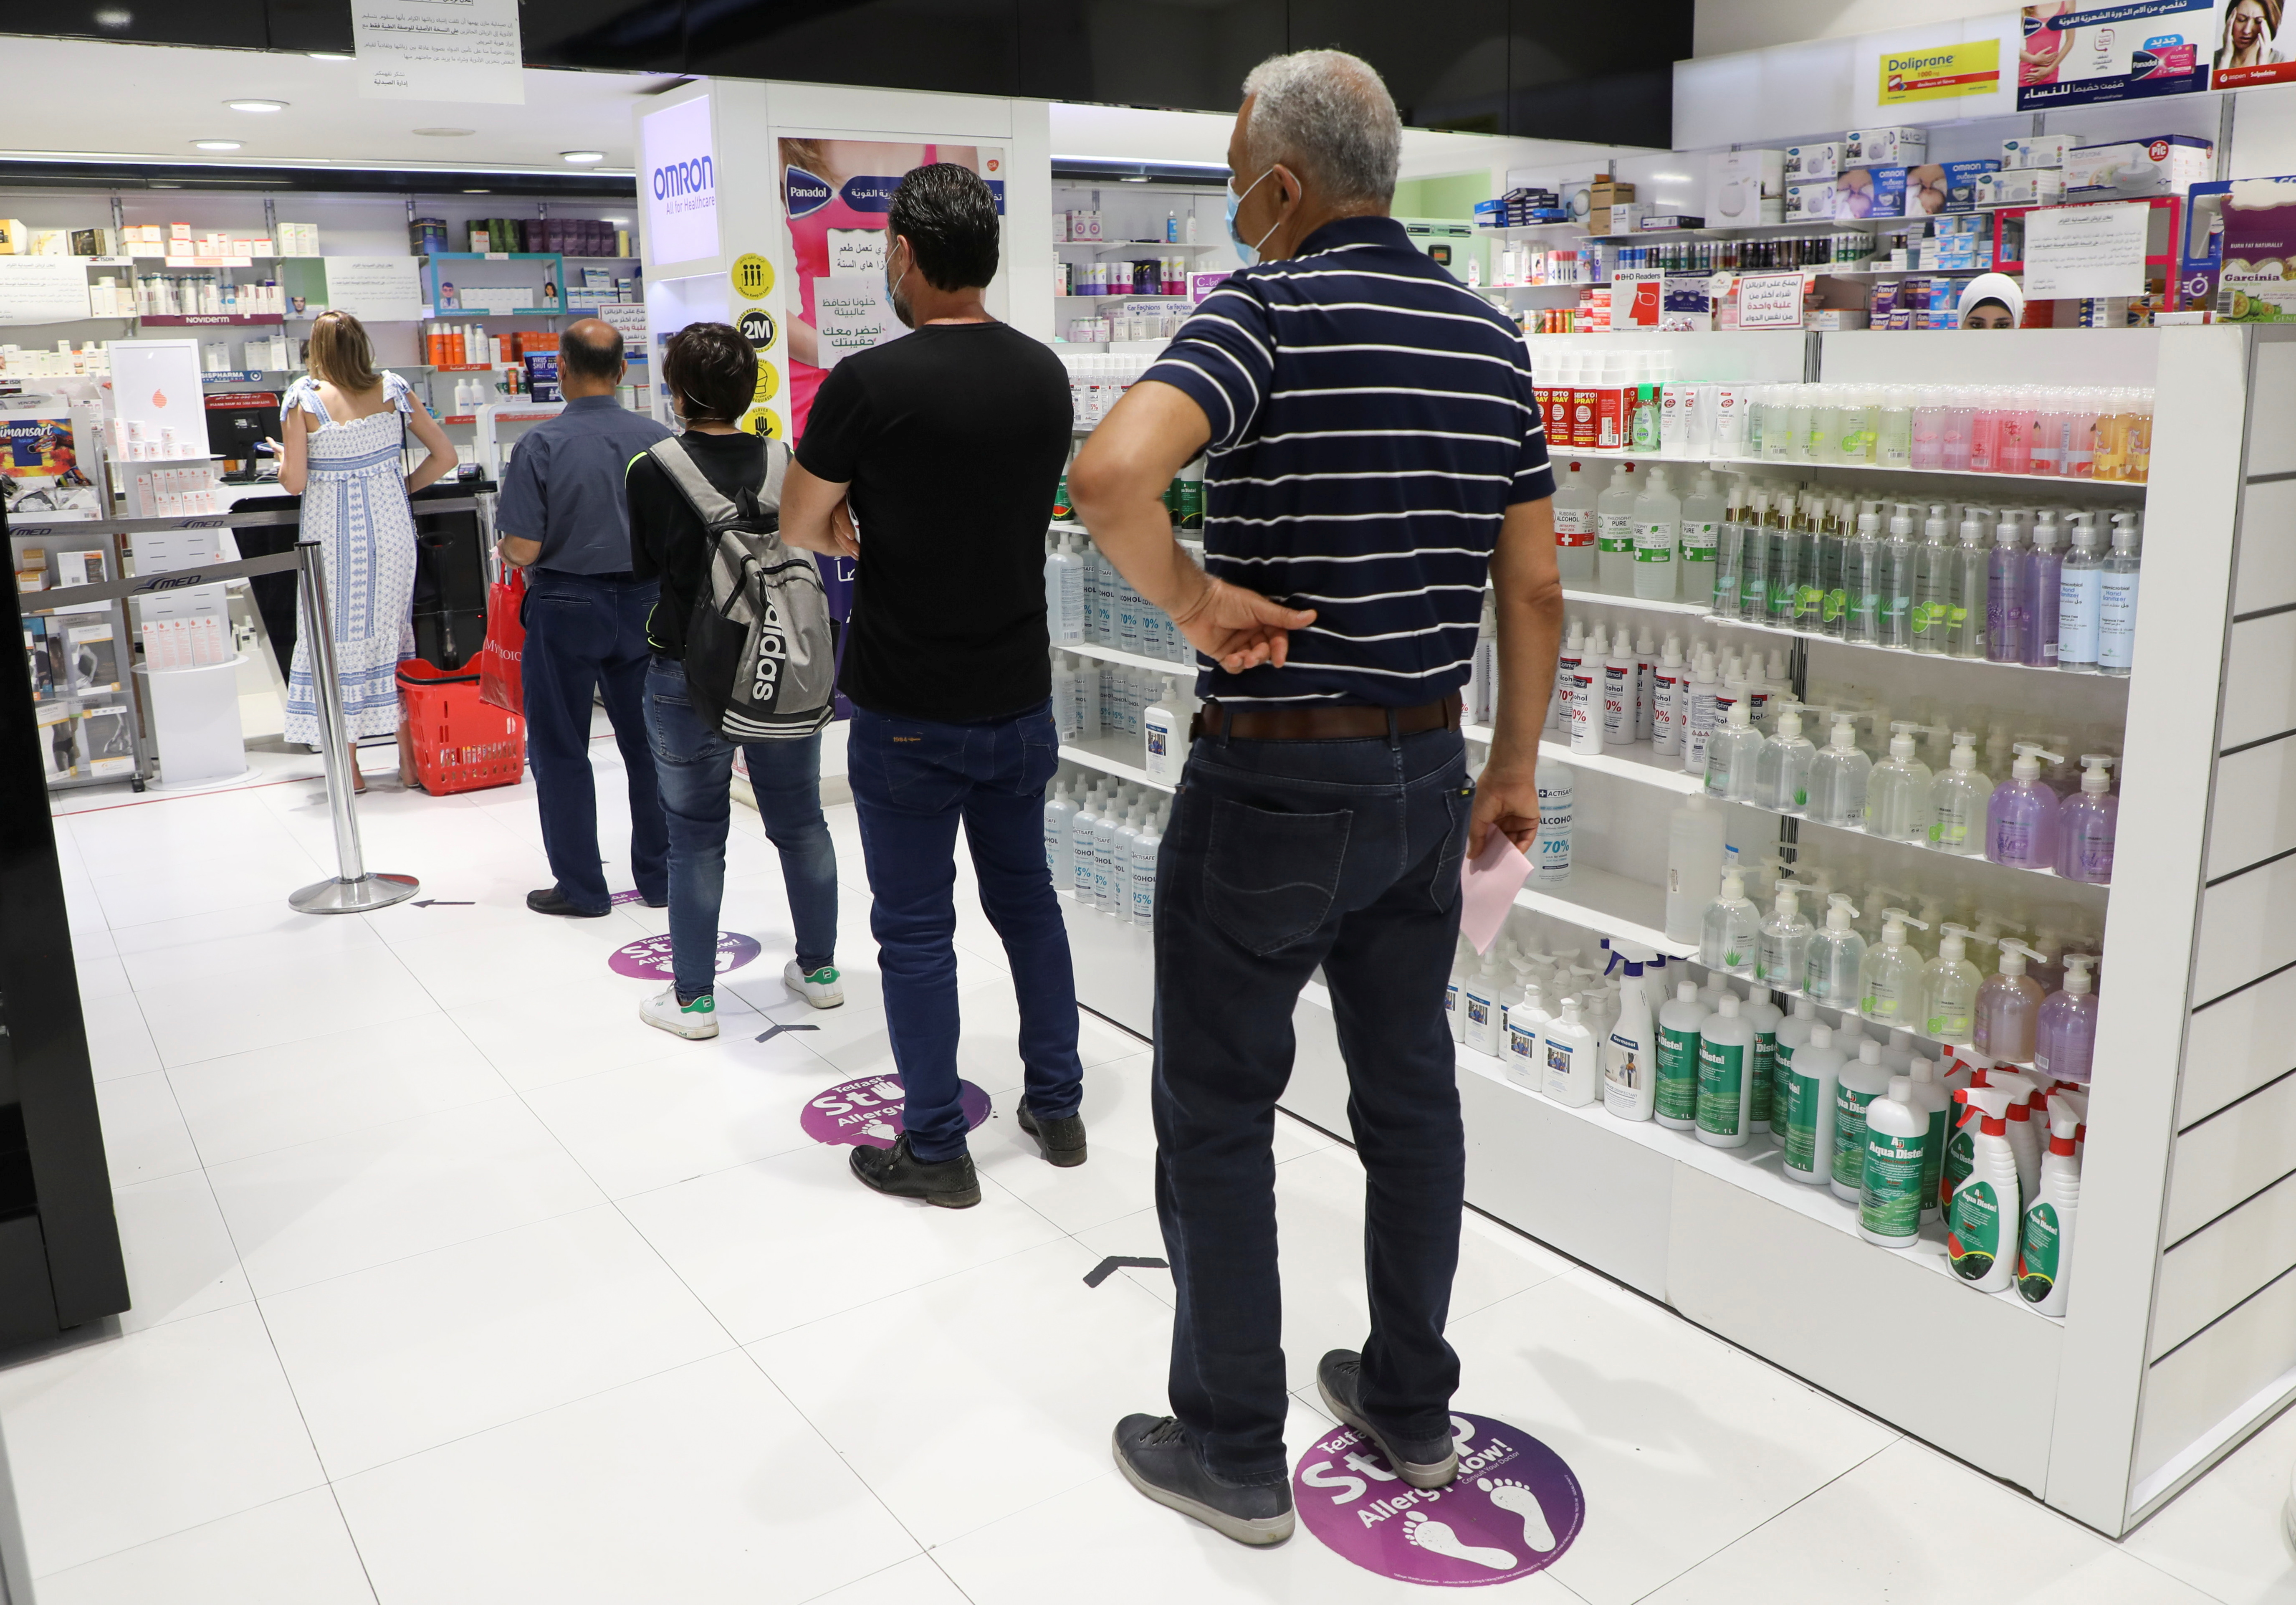 People queue inside a pharmacy in Beirut, Lebanon May 28, 2021. Picture taken May 28, 2021. REUTERS/Mohamed Azakir